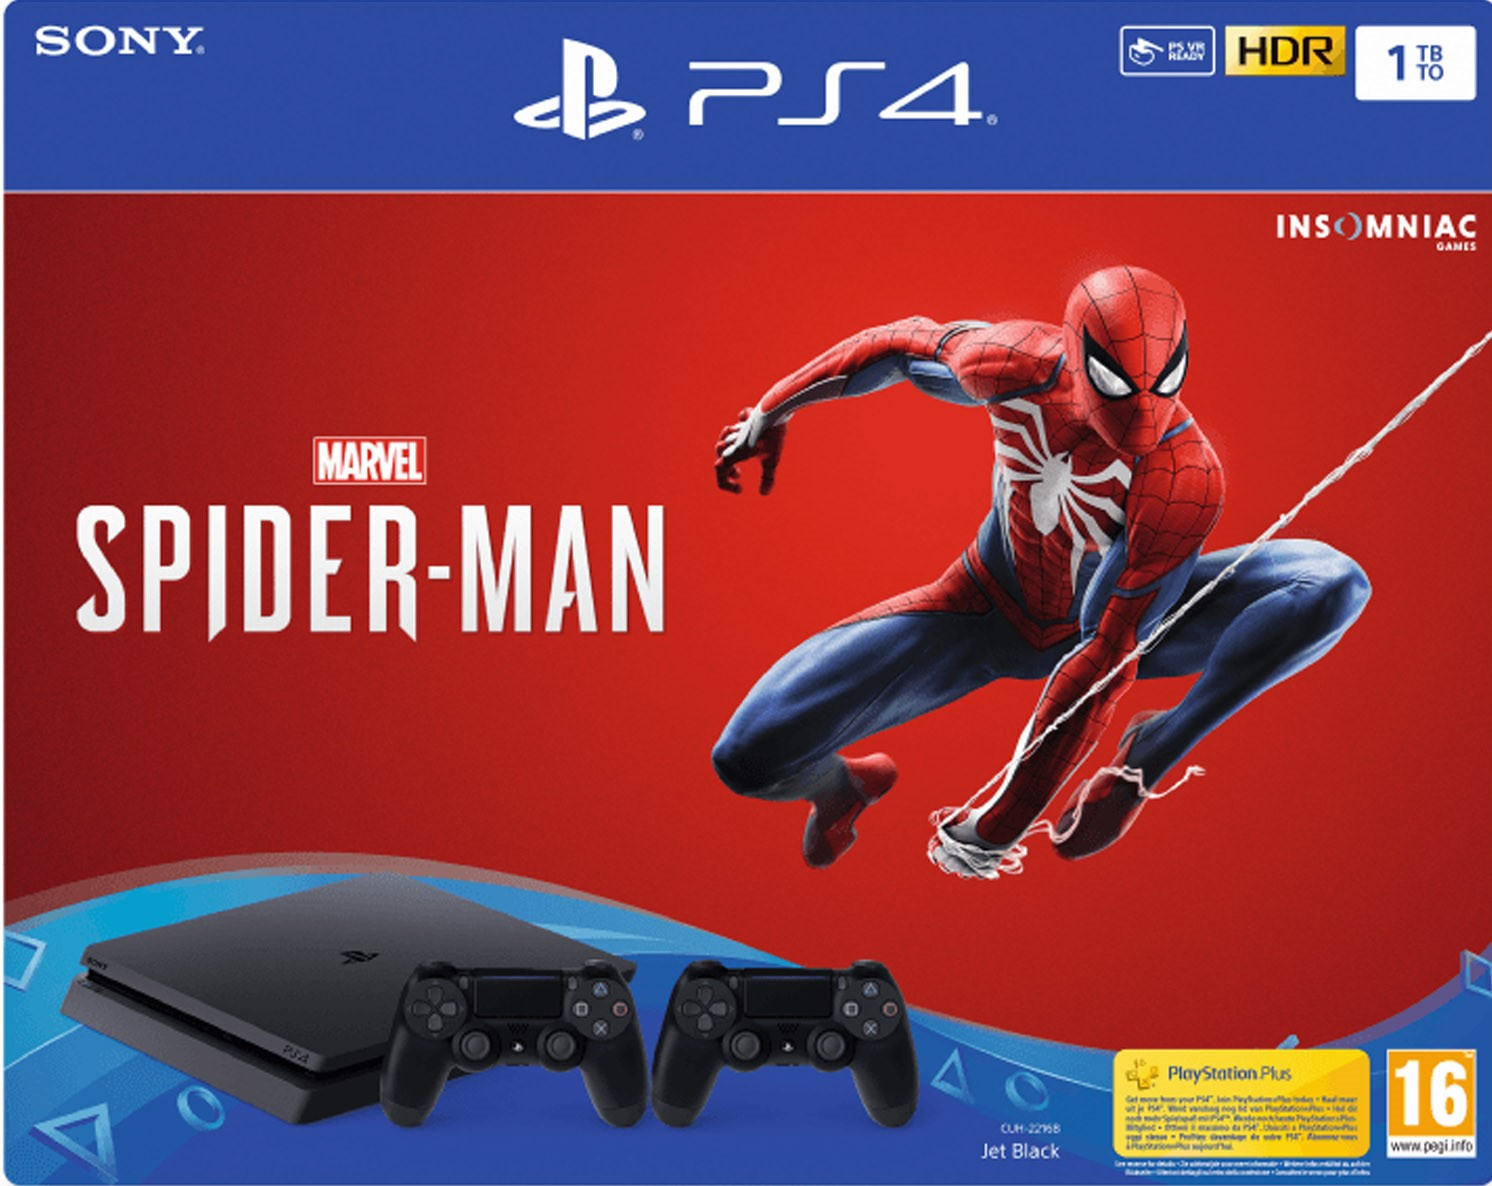 PlayStation 4 Slim 1 TB + 1db DualShock 4 kontroller + Spider Man